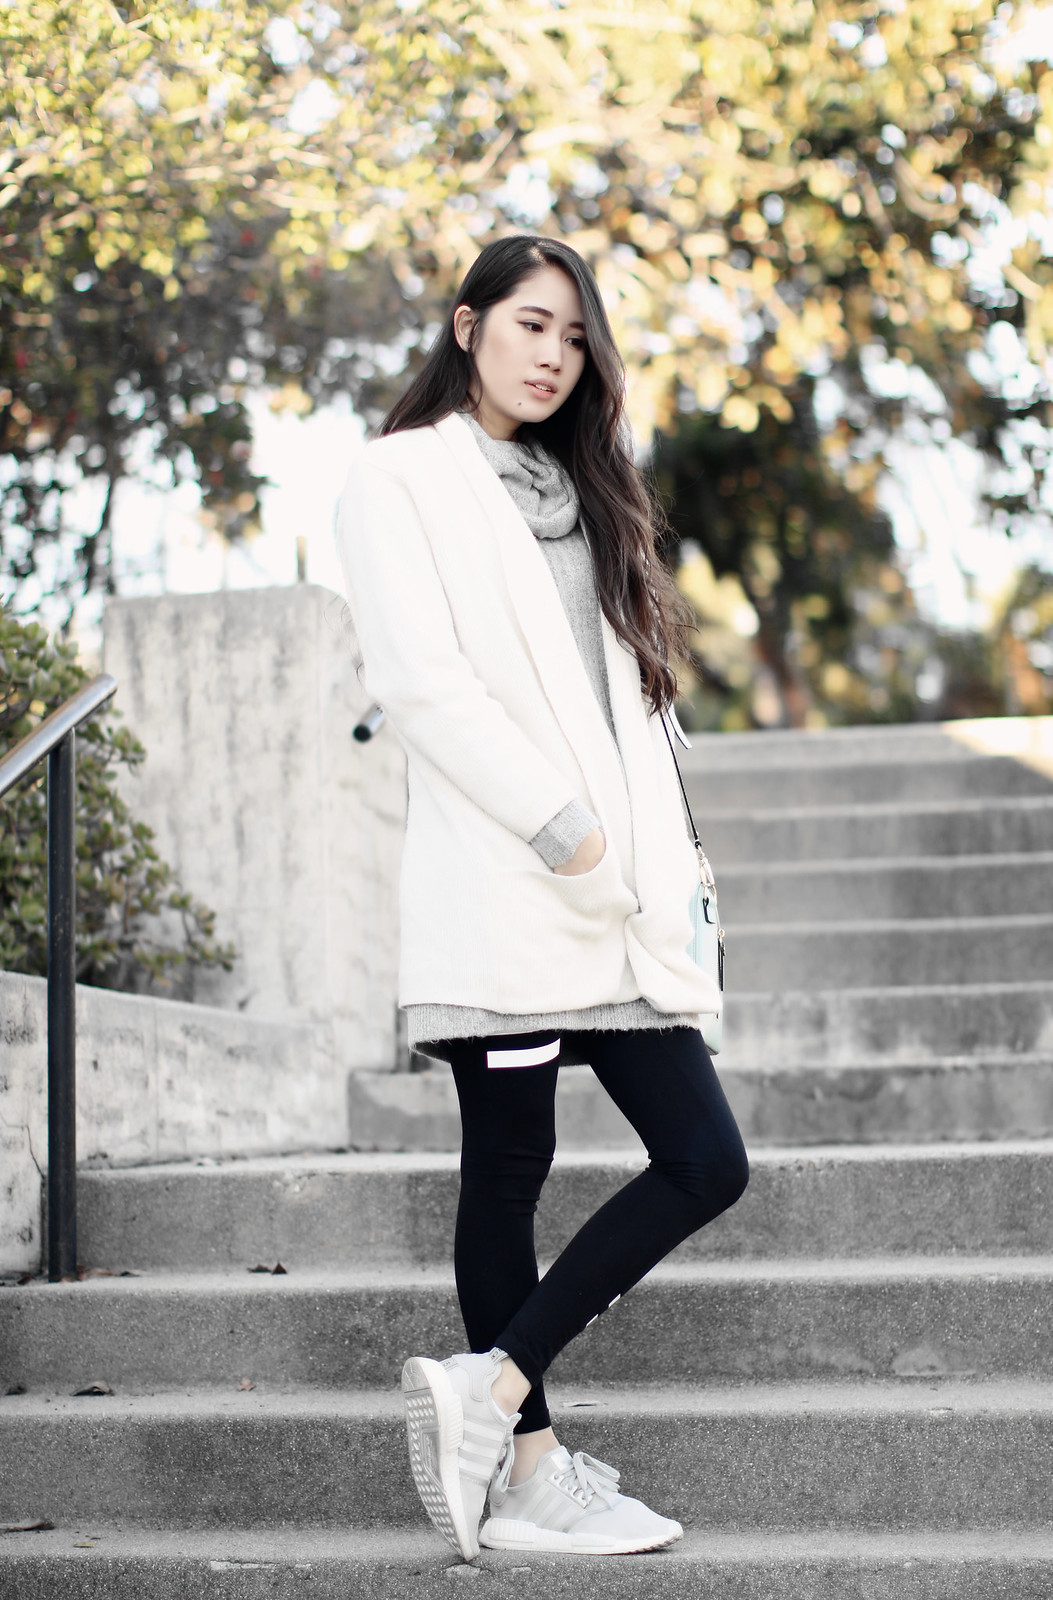 1533-ootd-fashion-style-tobi-cowl-neck-turtleneck-sweater-dress-asianfashion-koreanfashion-winterfashion-clothestoyouuu-elizabeeetht